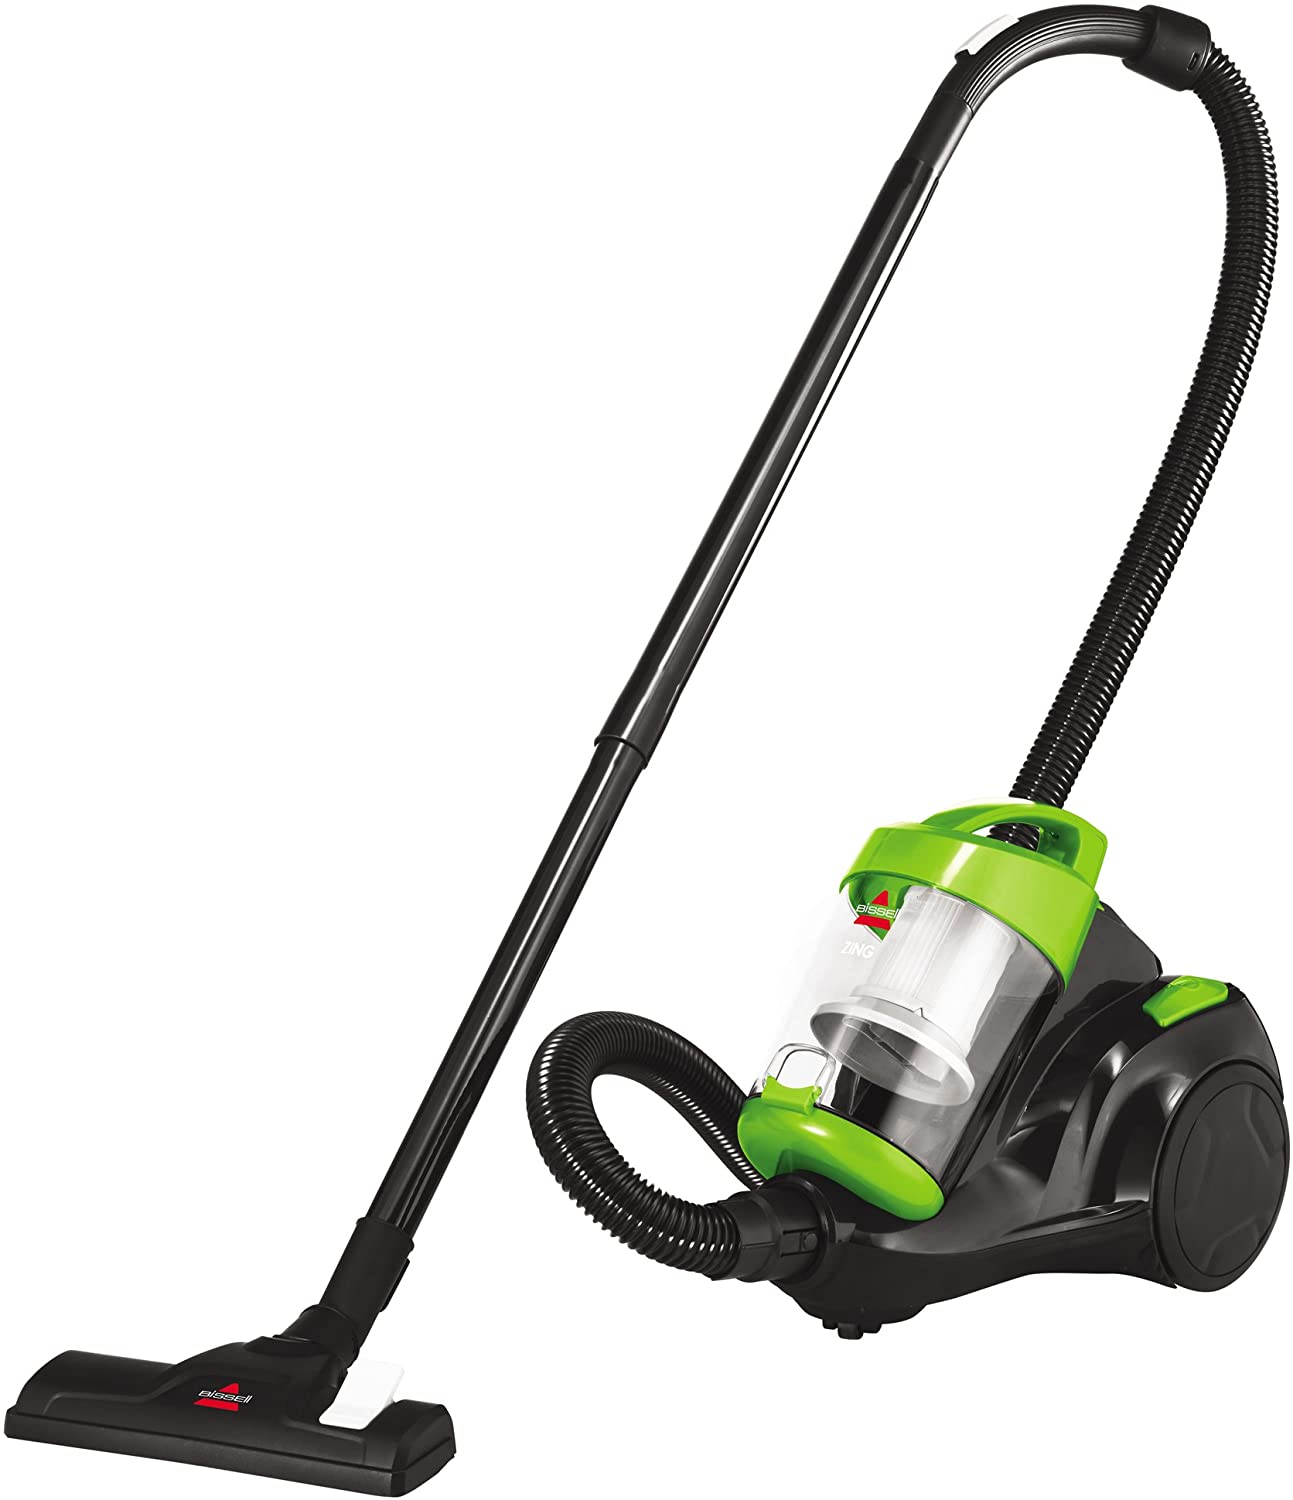 Review of Bissell Zing Canister, 2156A Vacuum, Green Bagless